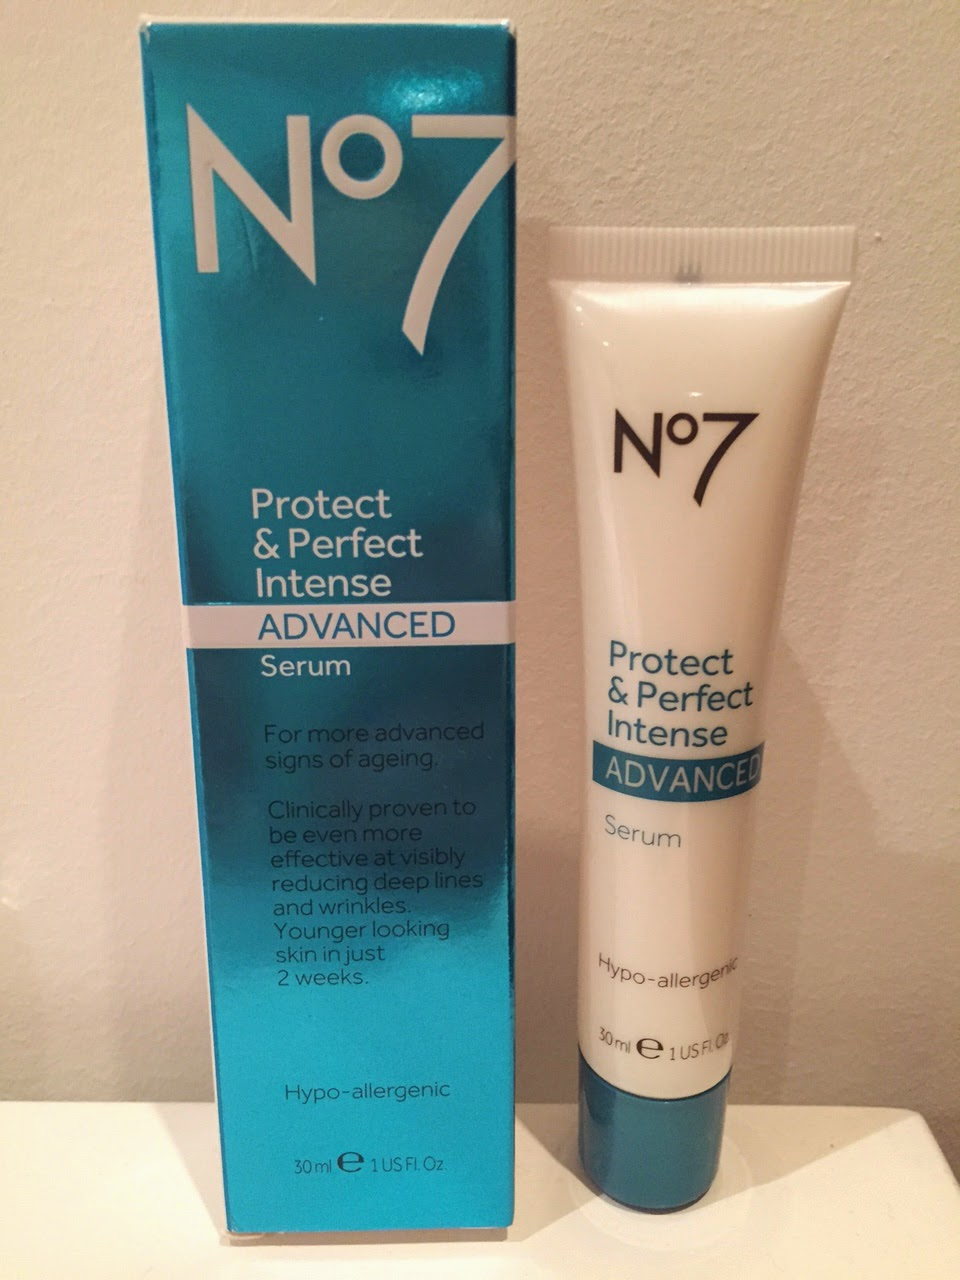 Boots protect and perfect intense serum